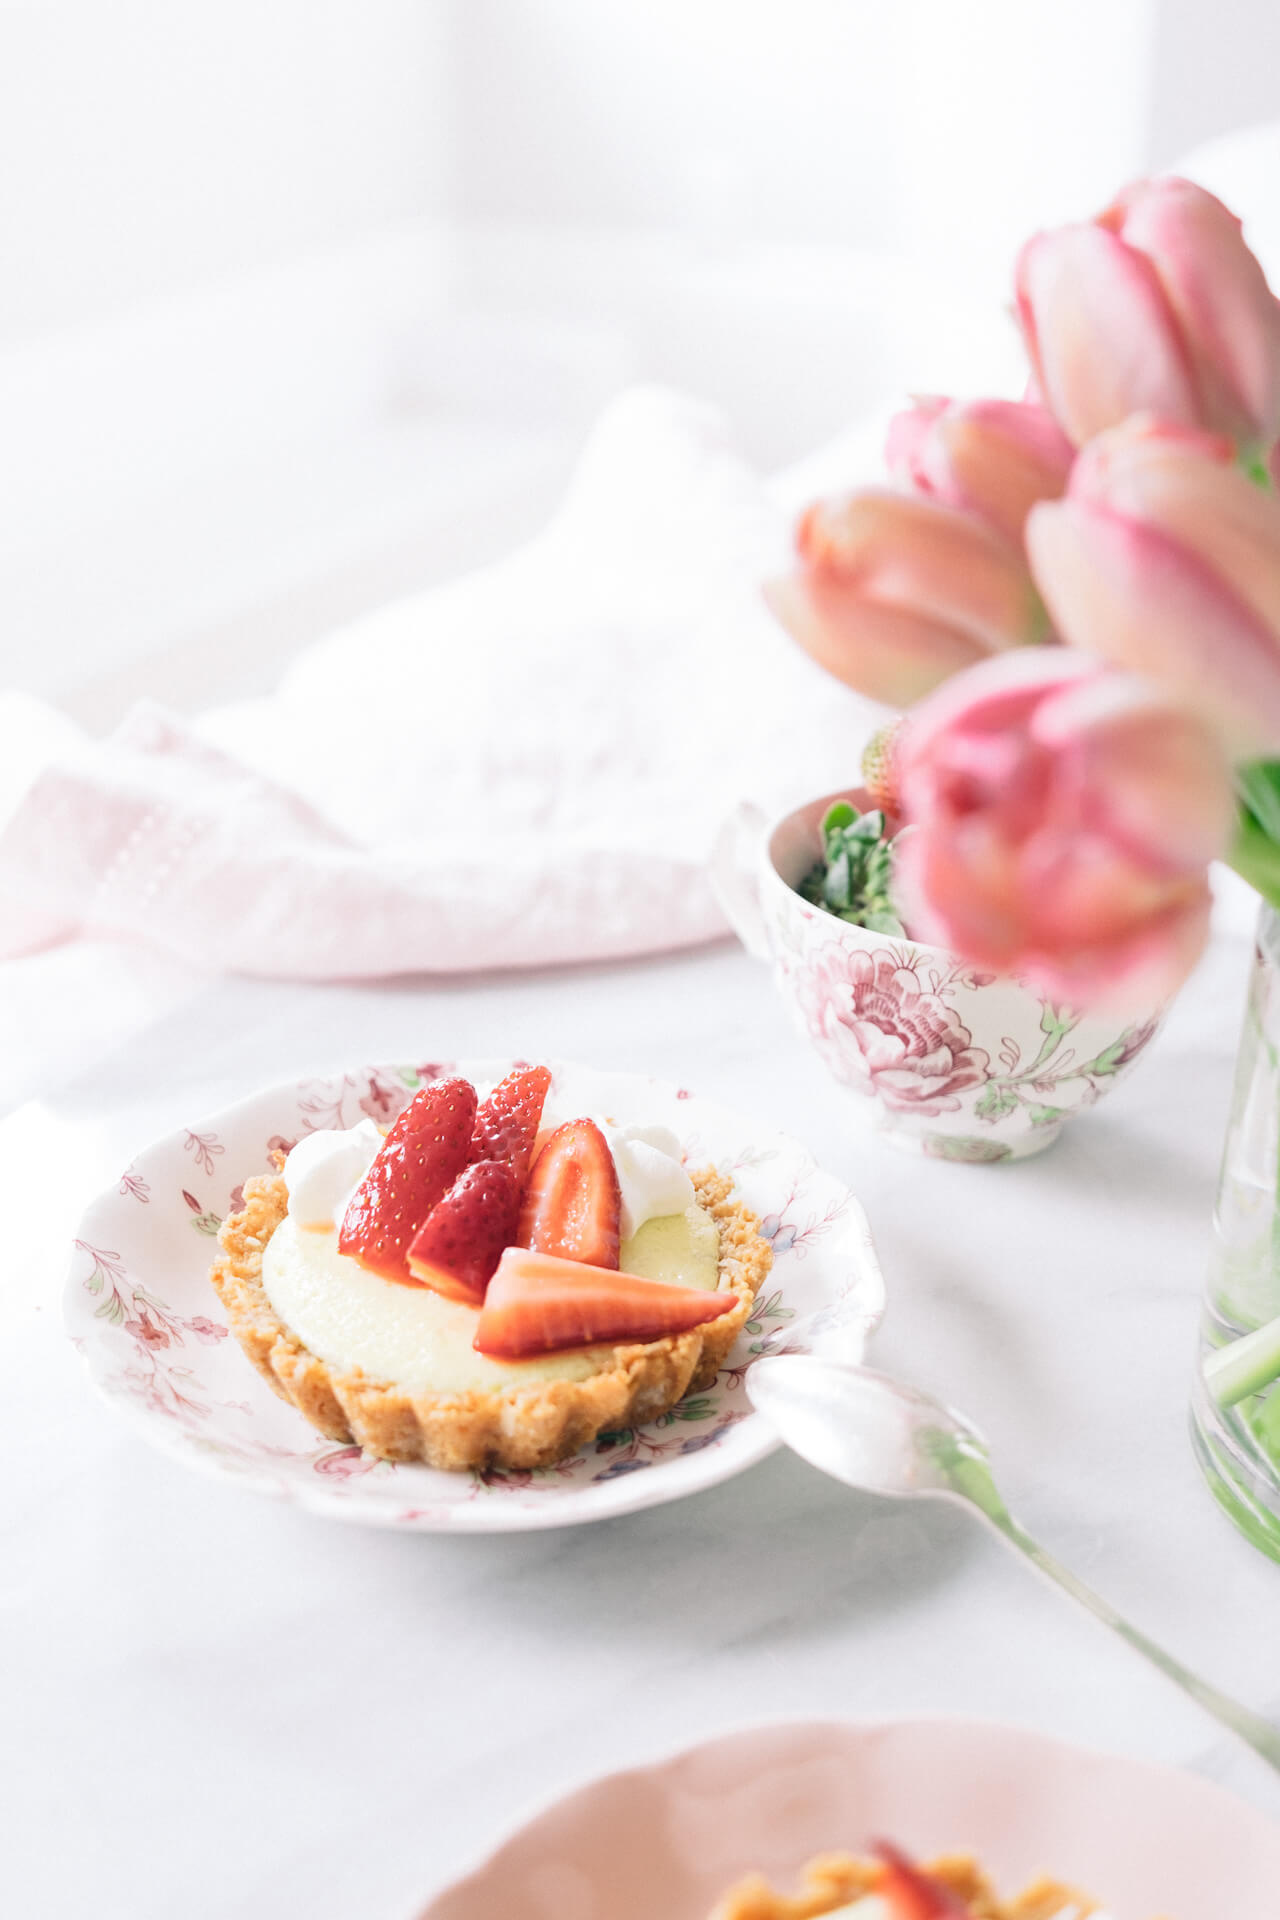 mini key lime tart recipe with strawberries- dessert idea for a spring party